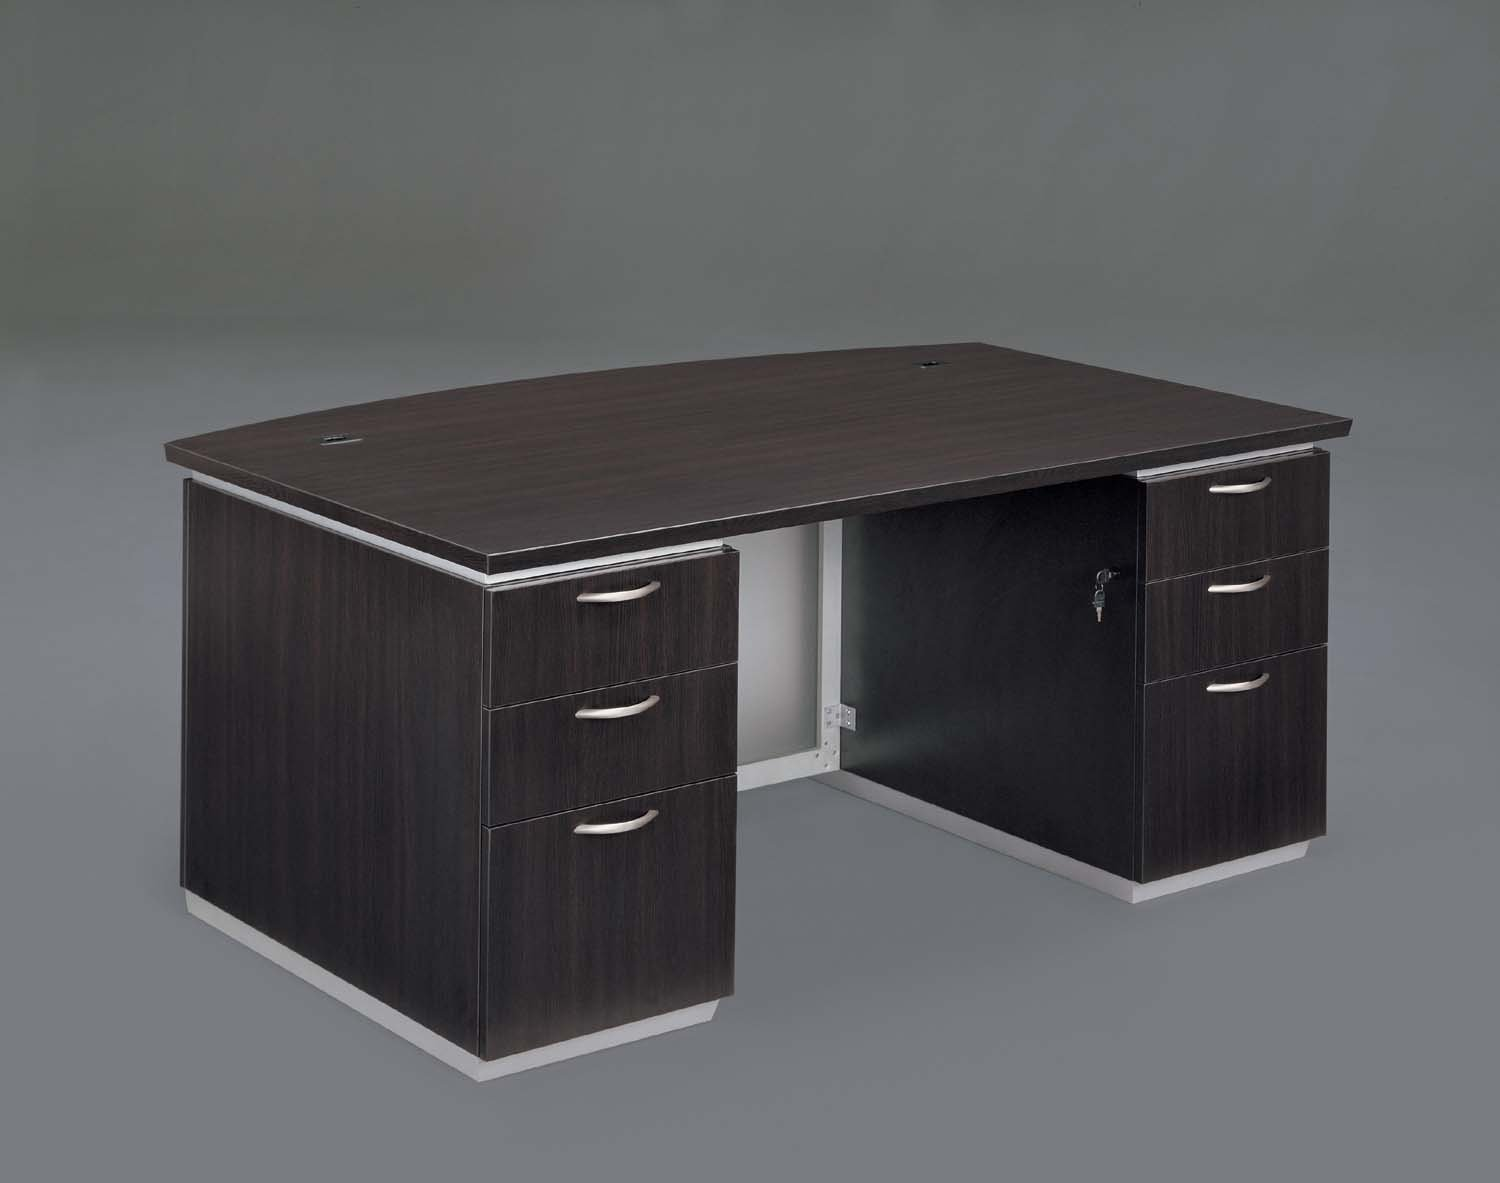 Flexsteel Pimlico  Executive Bow Front Desk with Frosted Glass Modesty Panel